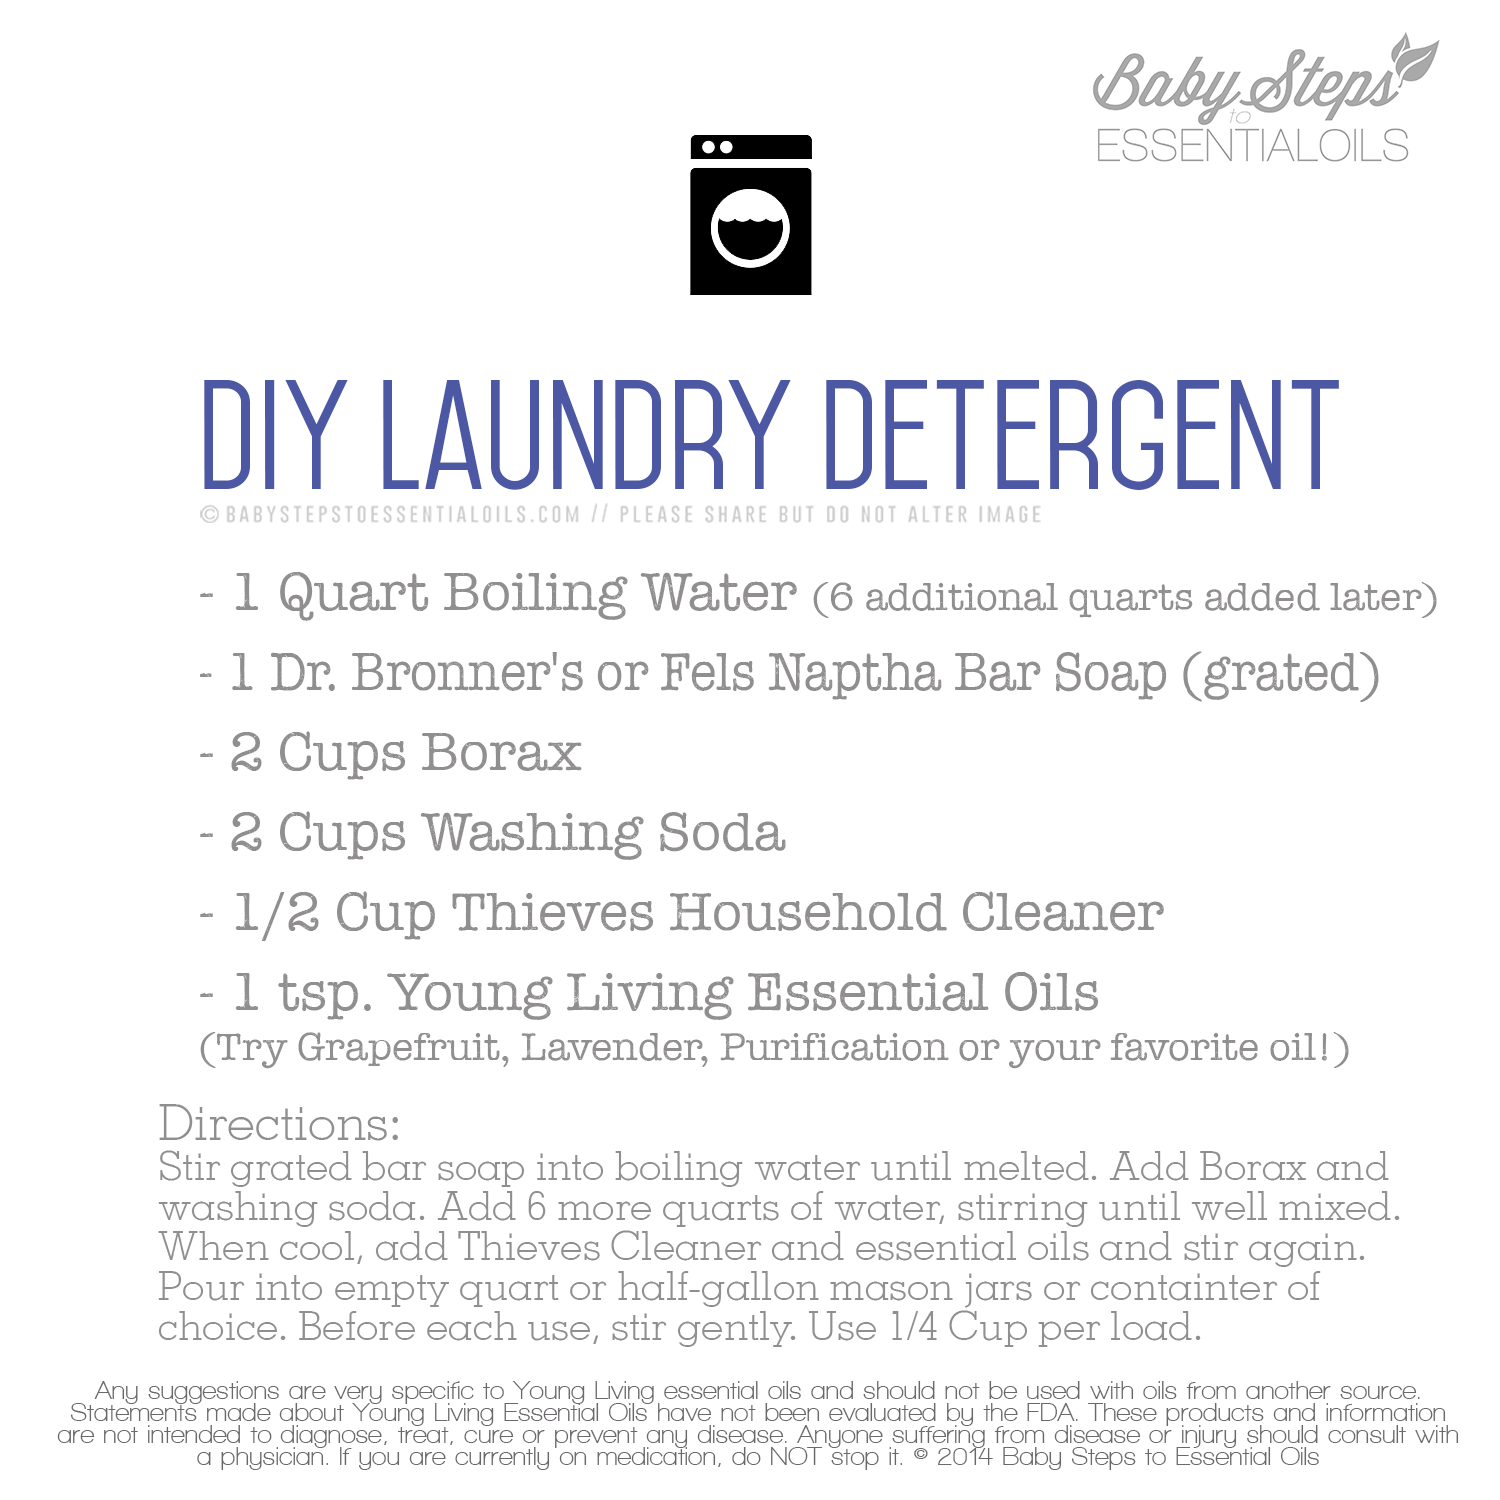 Diy laundry detergent recipe with thieves household cleaner diy laundry detergent recipe with thieves household cleaner solutioingenieria Images